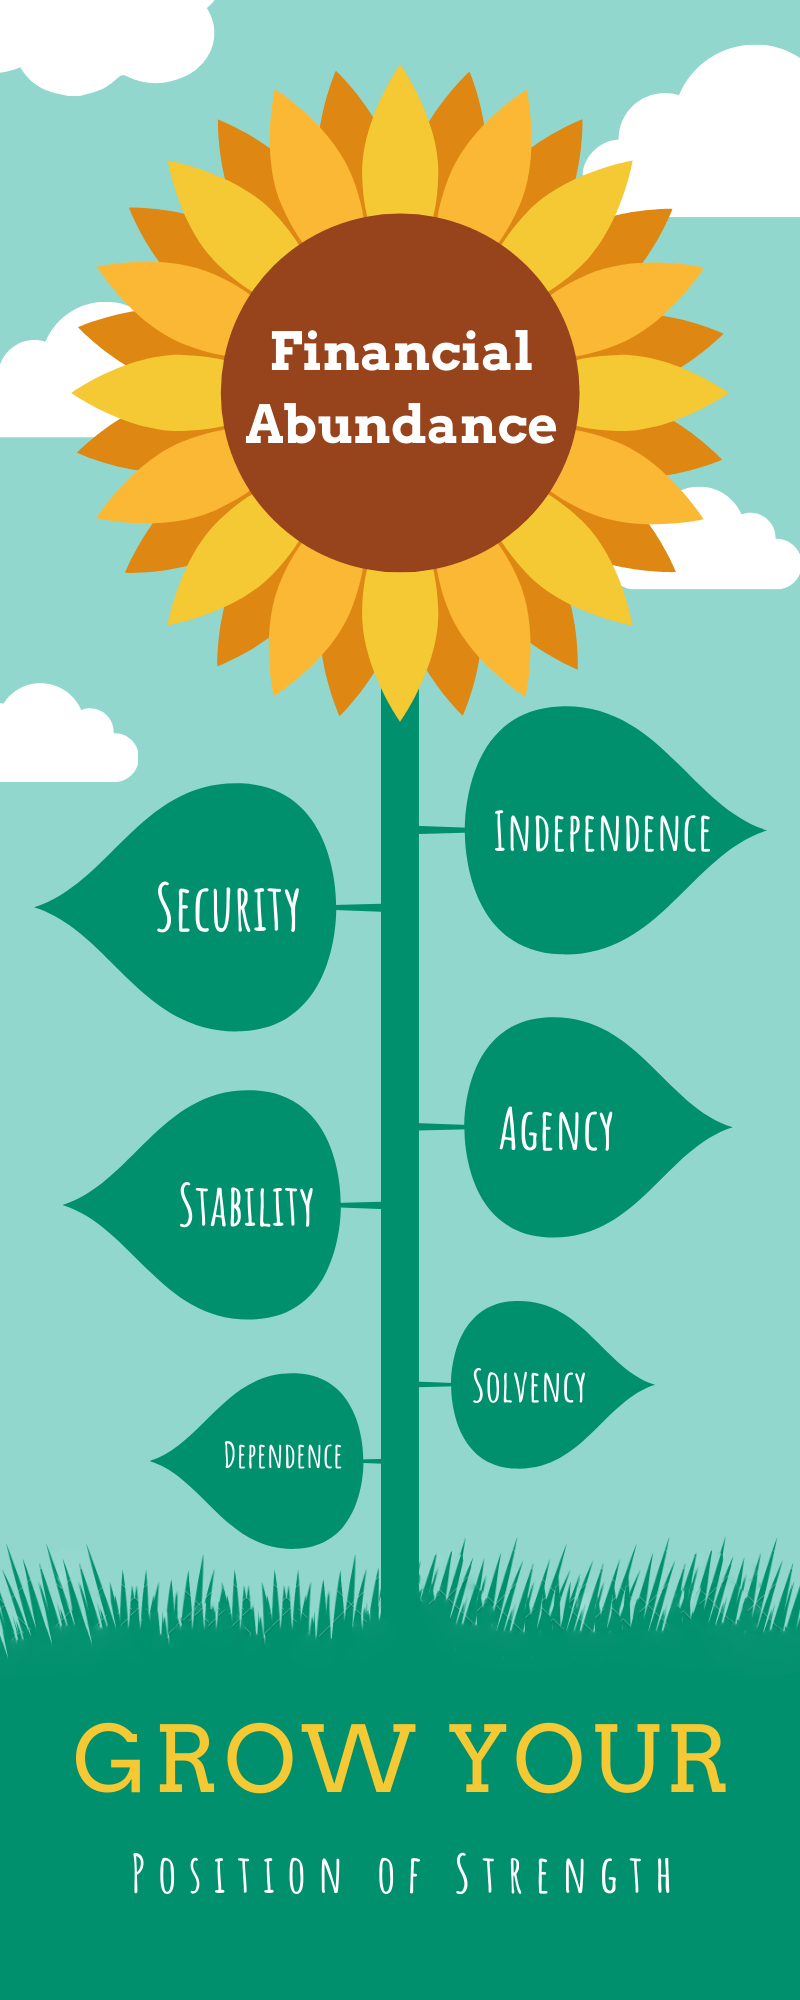 Depicting the 7 levels of financial independence, each a position of strength rising from weakness (dependency) to full strength (abundance).